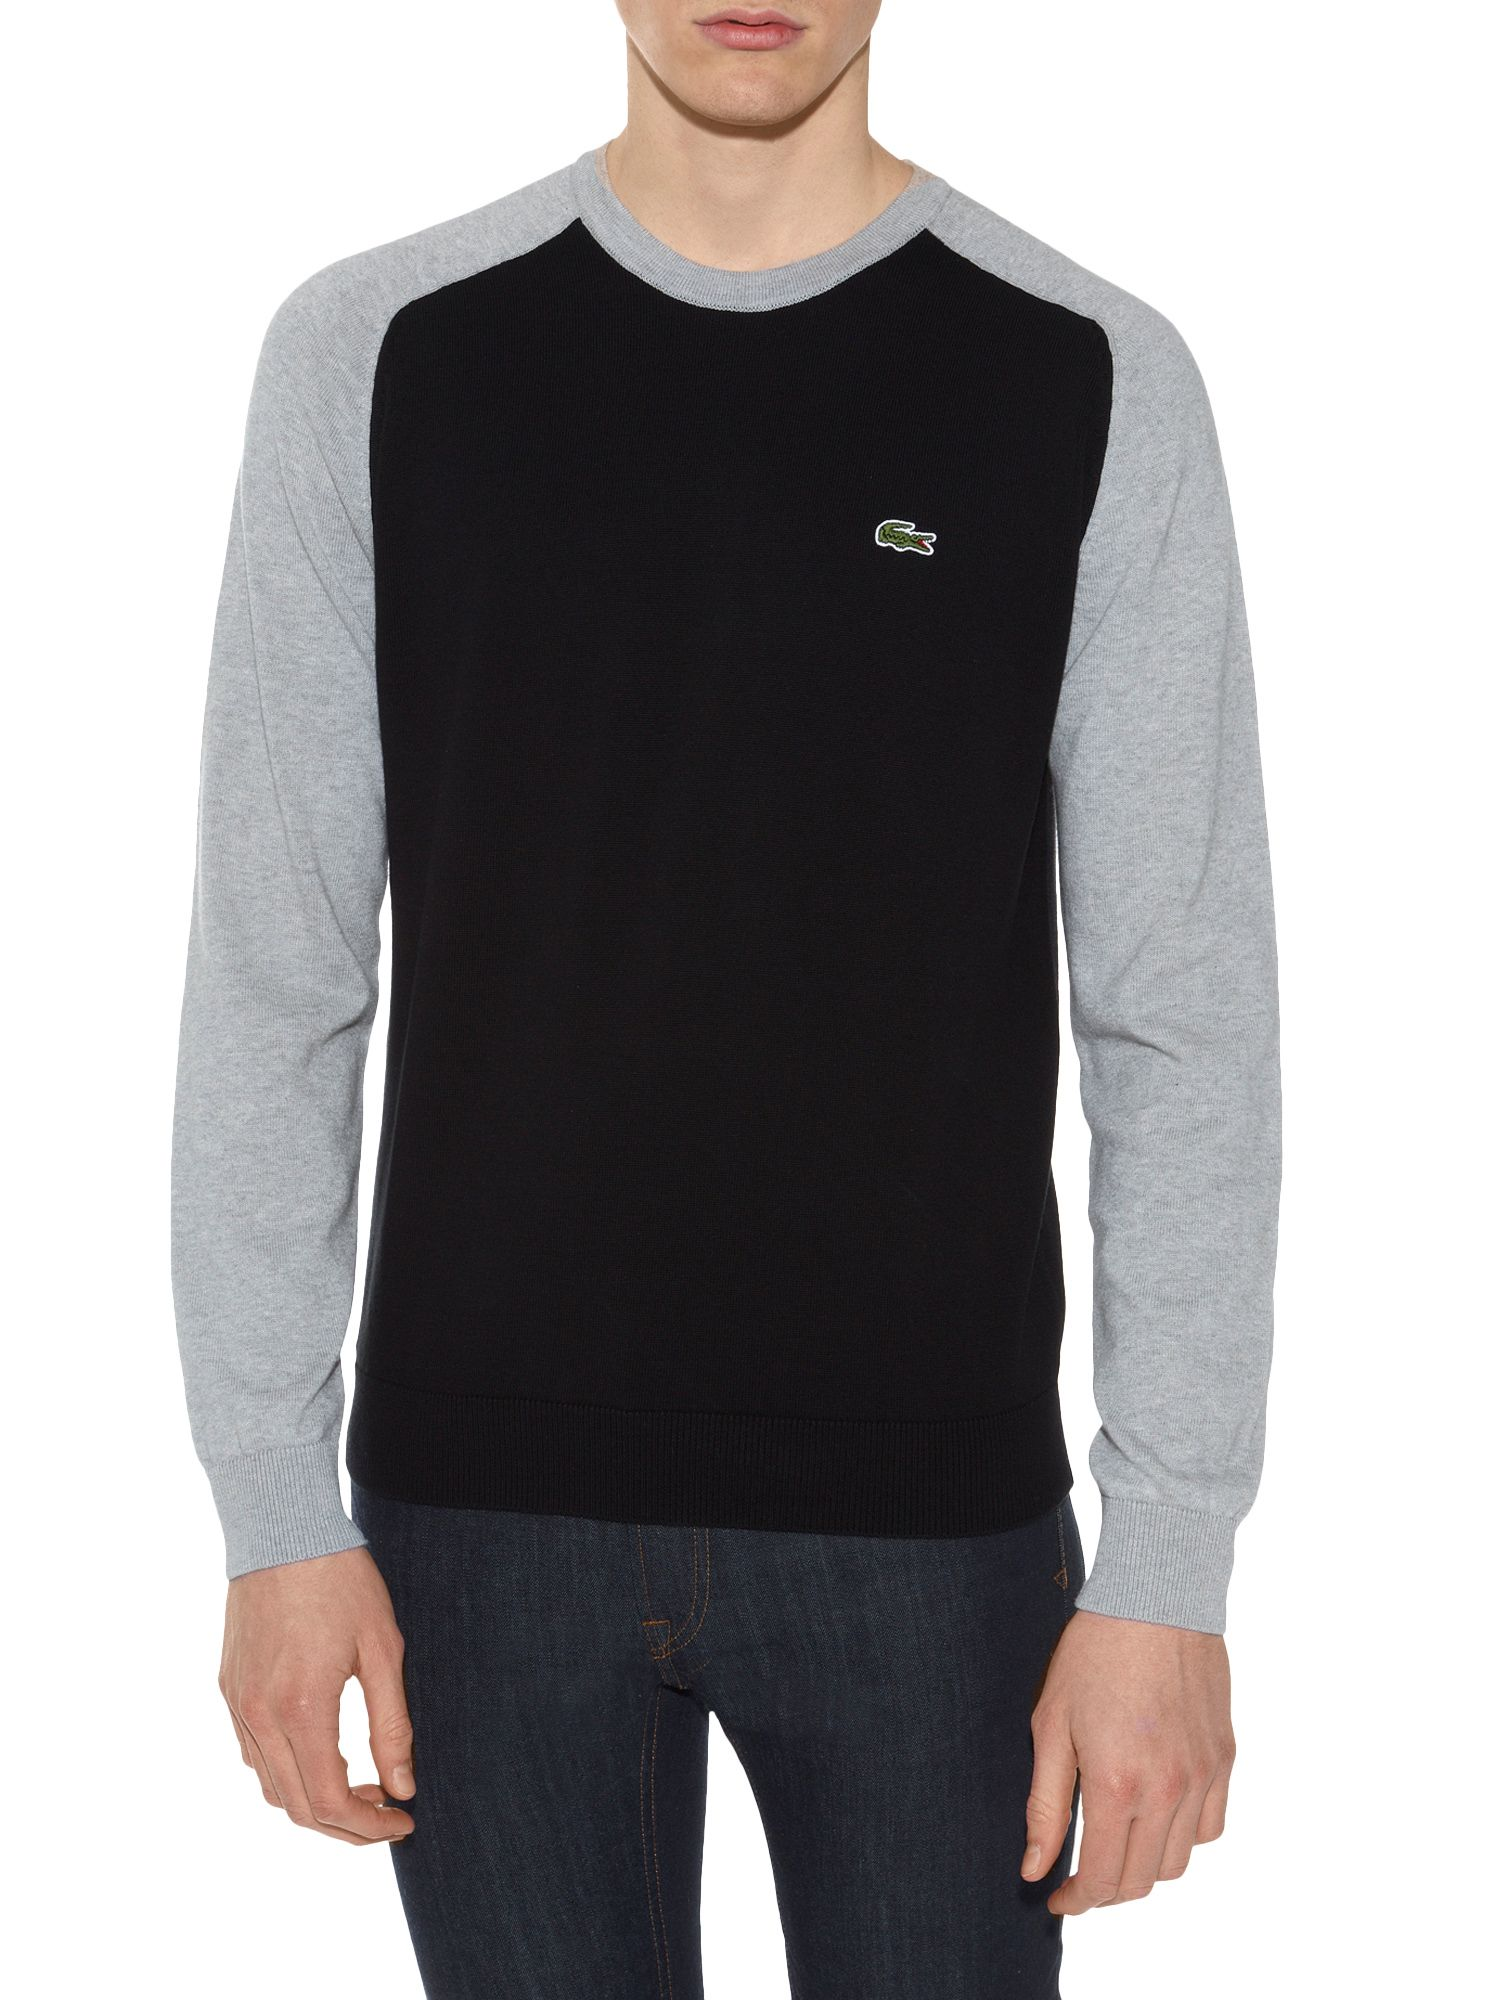 Lacoste L!VE sweater